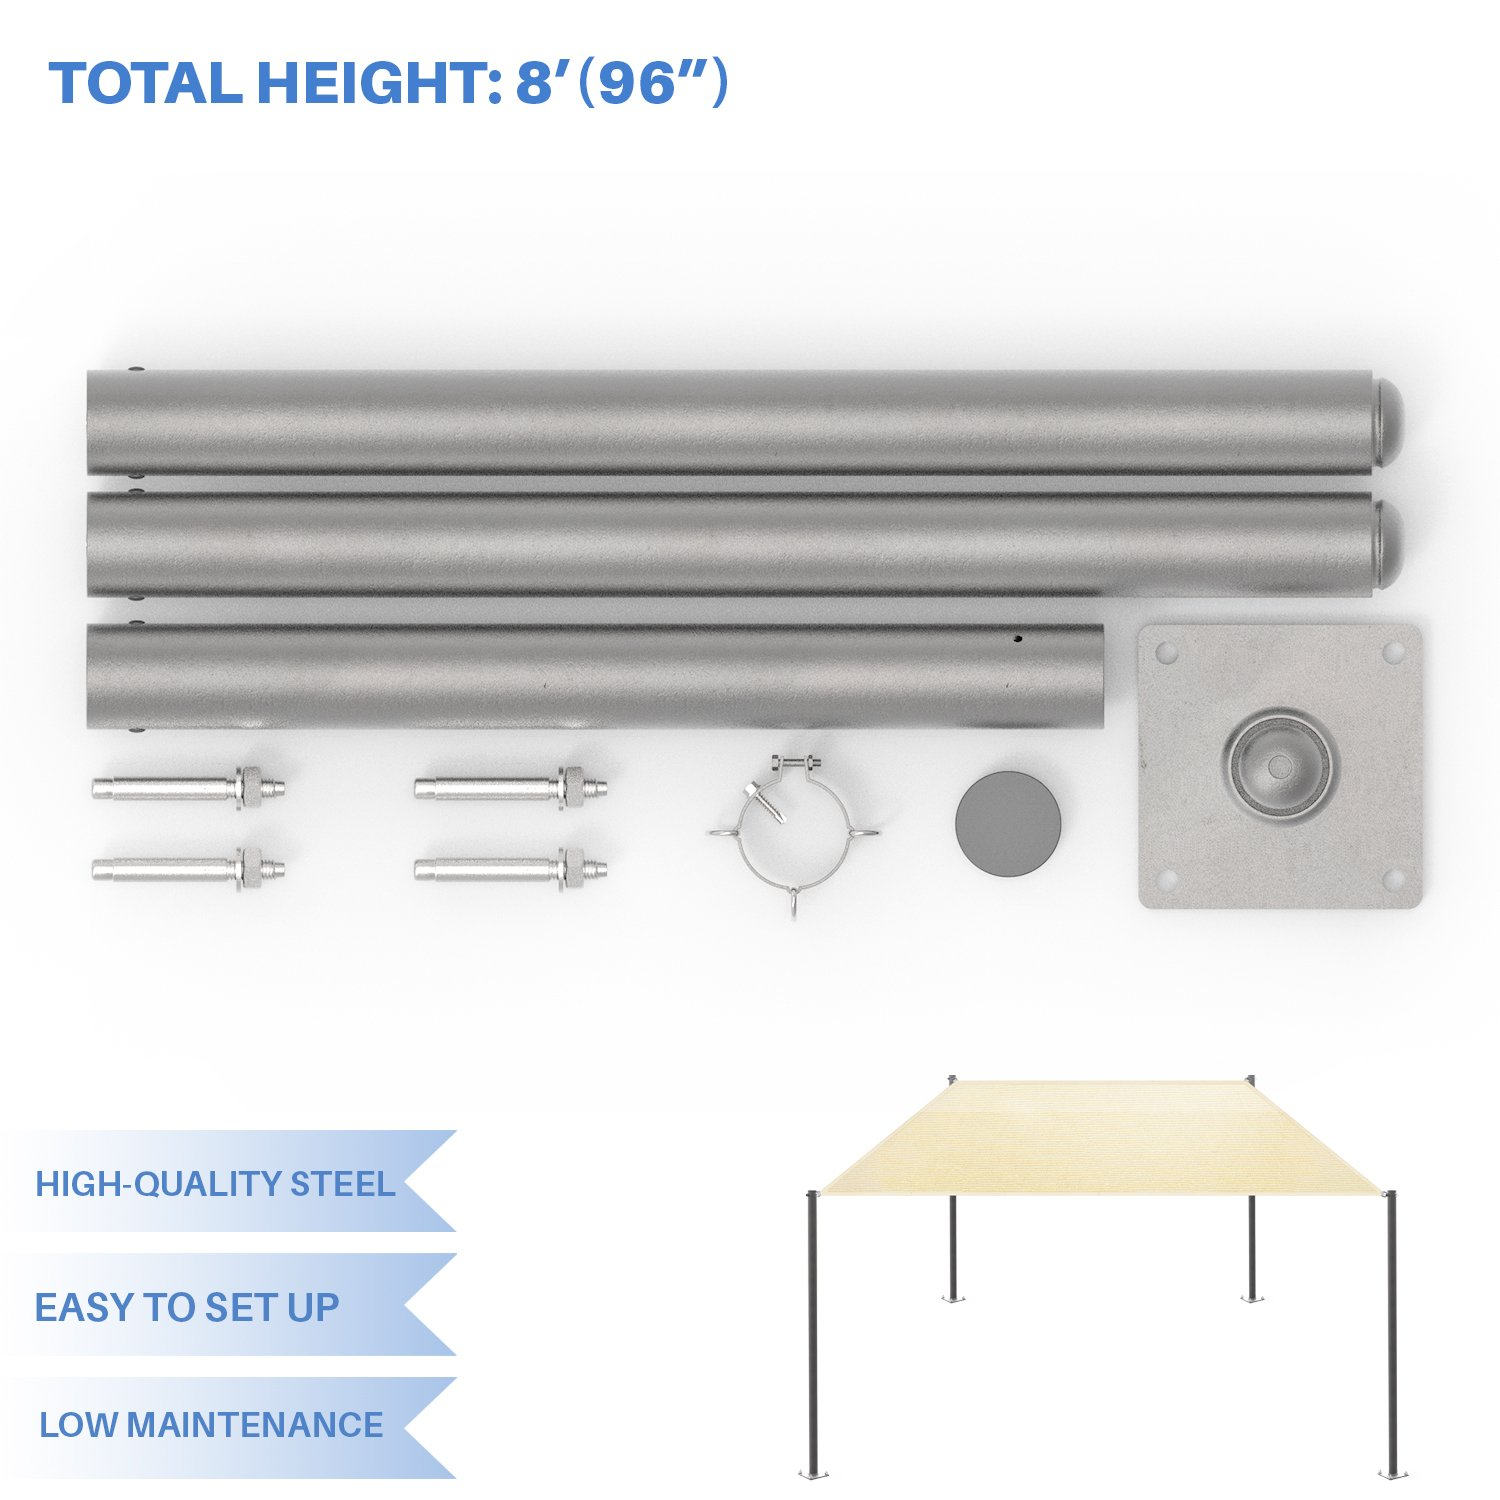 E&KSunrise Sun Shade Sail Pole, Stand Post - 8' Feet Tall (96'') -Heavy-duty Awning, Canopy Support Poles ,Space Durable versatile replacement poles, steel - Gray